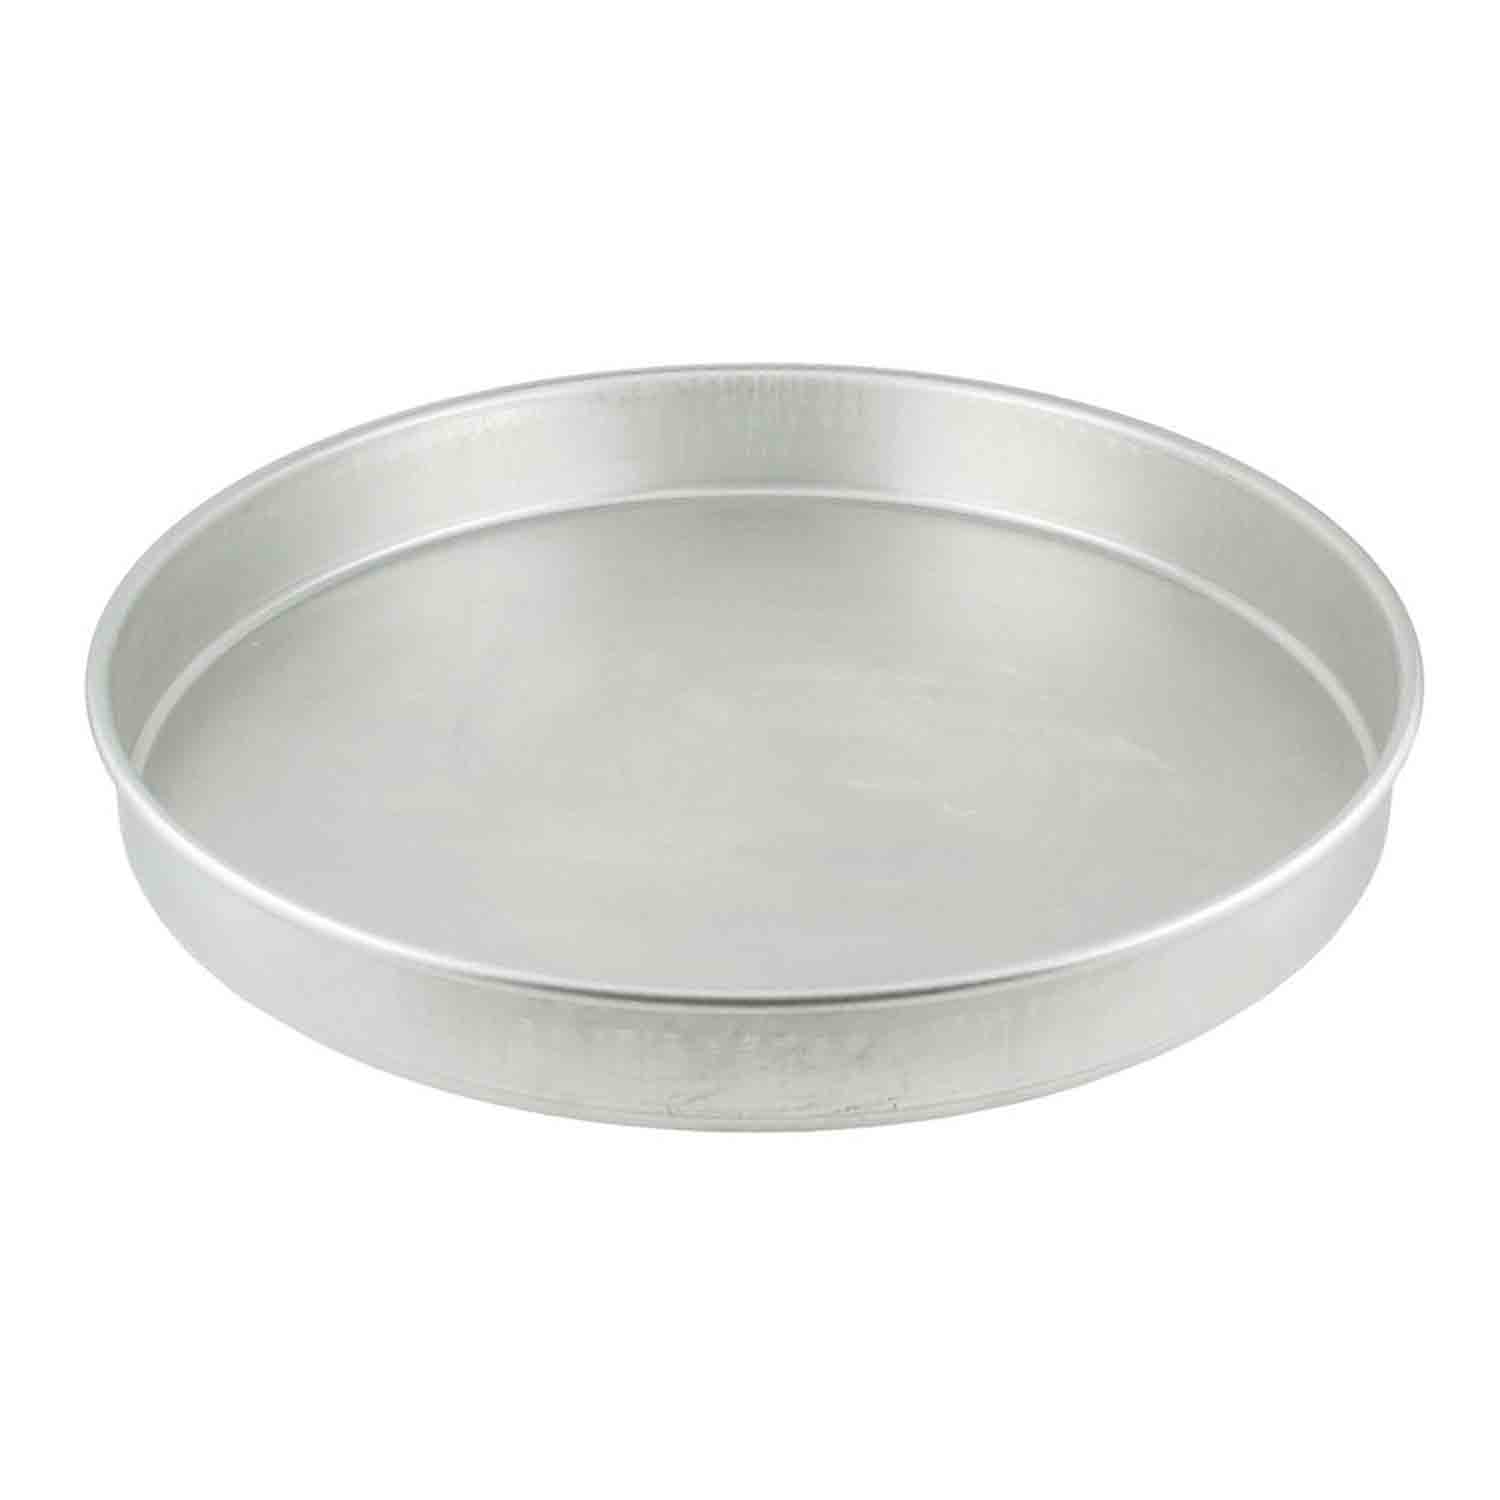 "16 x 2"" Magic Line Round Cake Pan"